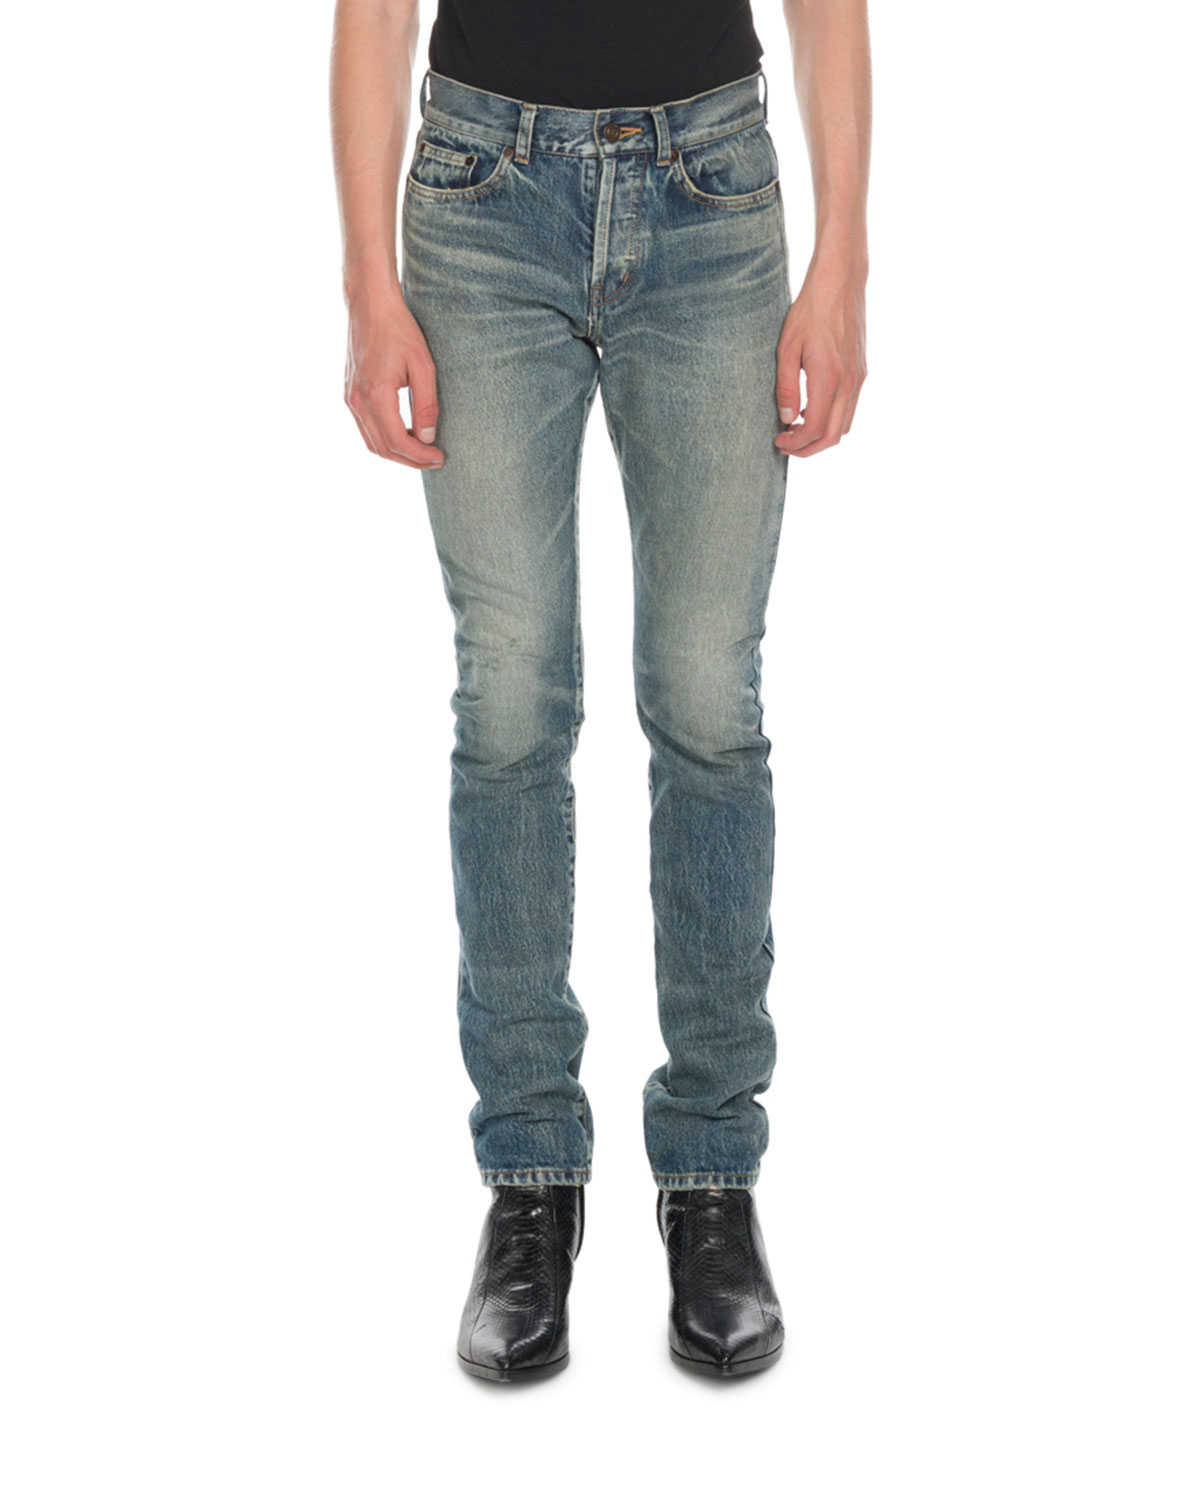 339cc1ed6b3 Saint Lau Men S Wash Distressed Denim Jeans Neiman Marcus. Saint Lau  Distressed Slim Fit Jeans Blue